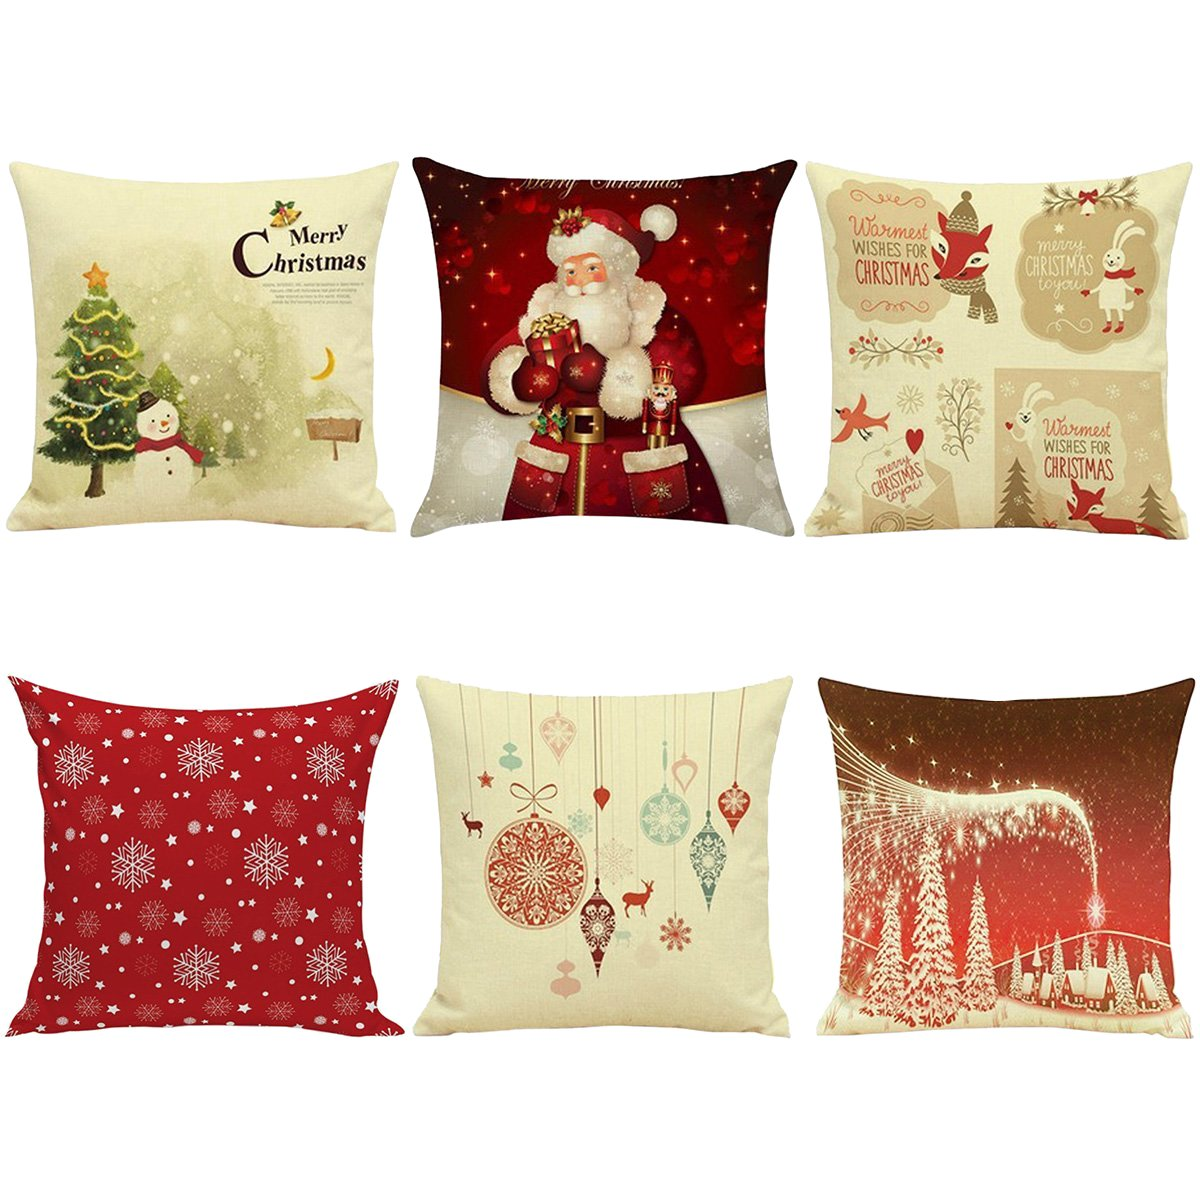 Hoomall Merry Christmas Cartoon Sofa Cushion Case Throw Pillow Cover 18x18 Inches without Core Set of 6 Ourstory